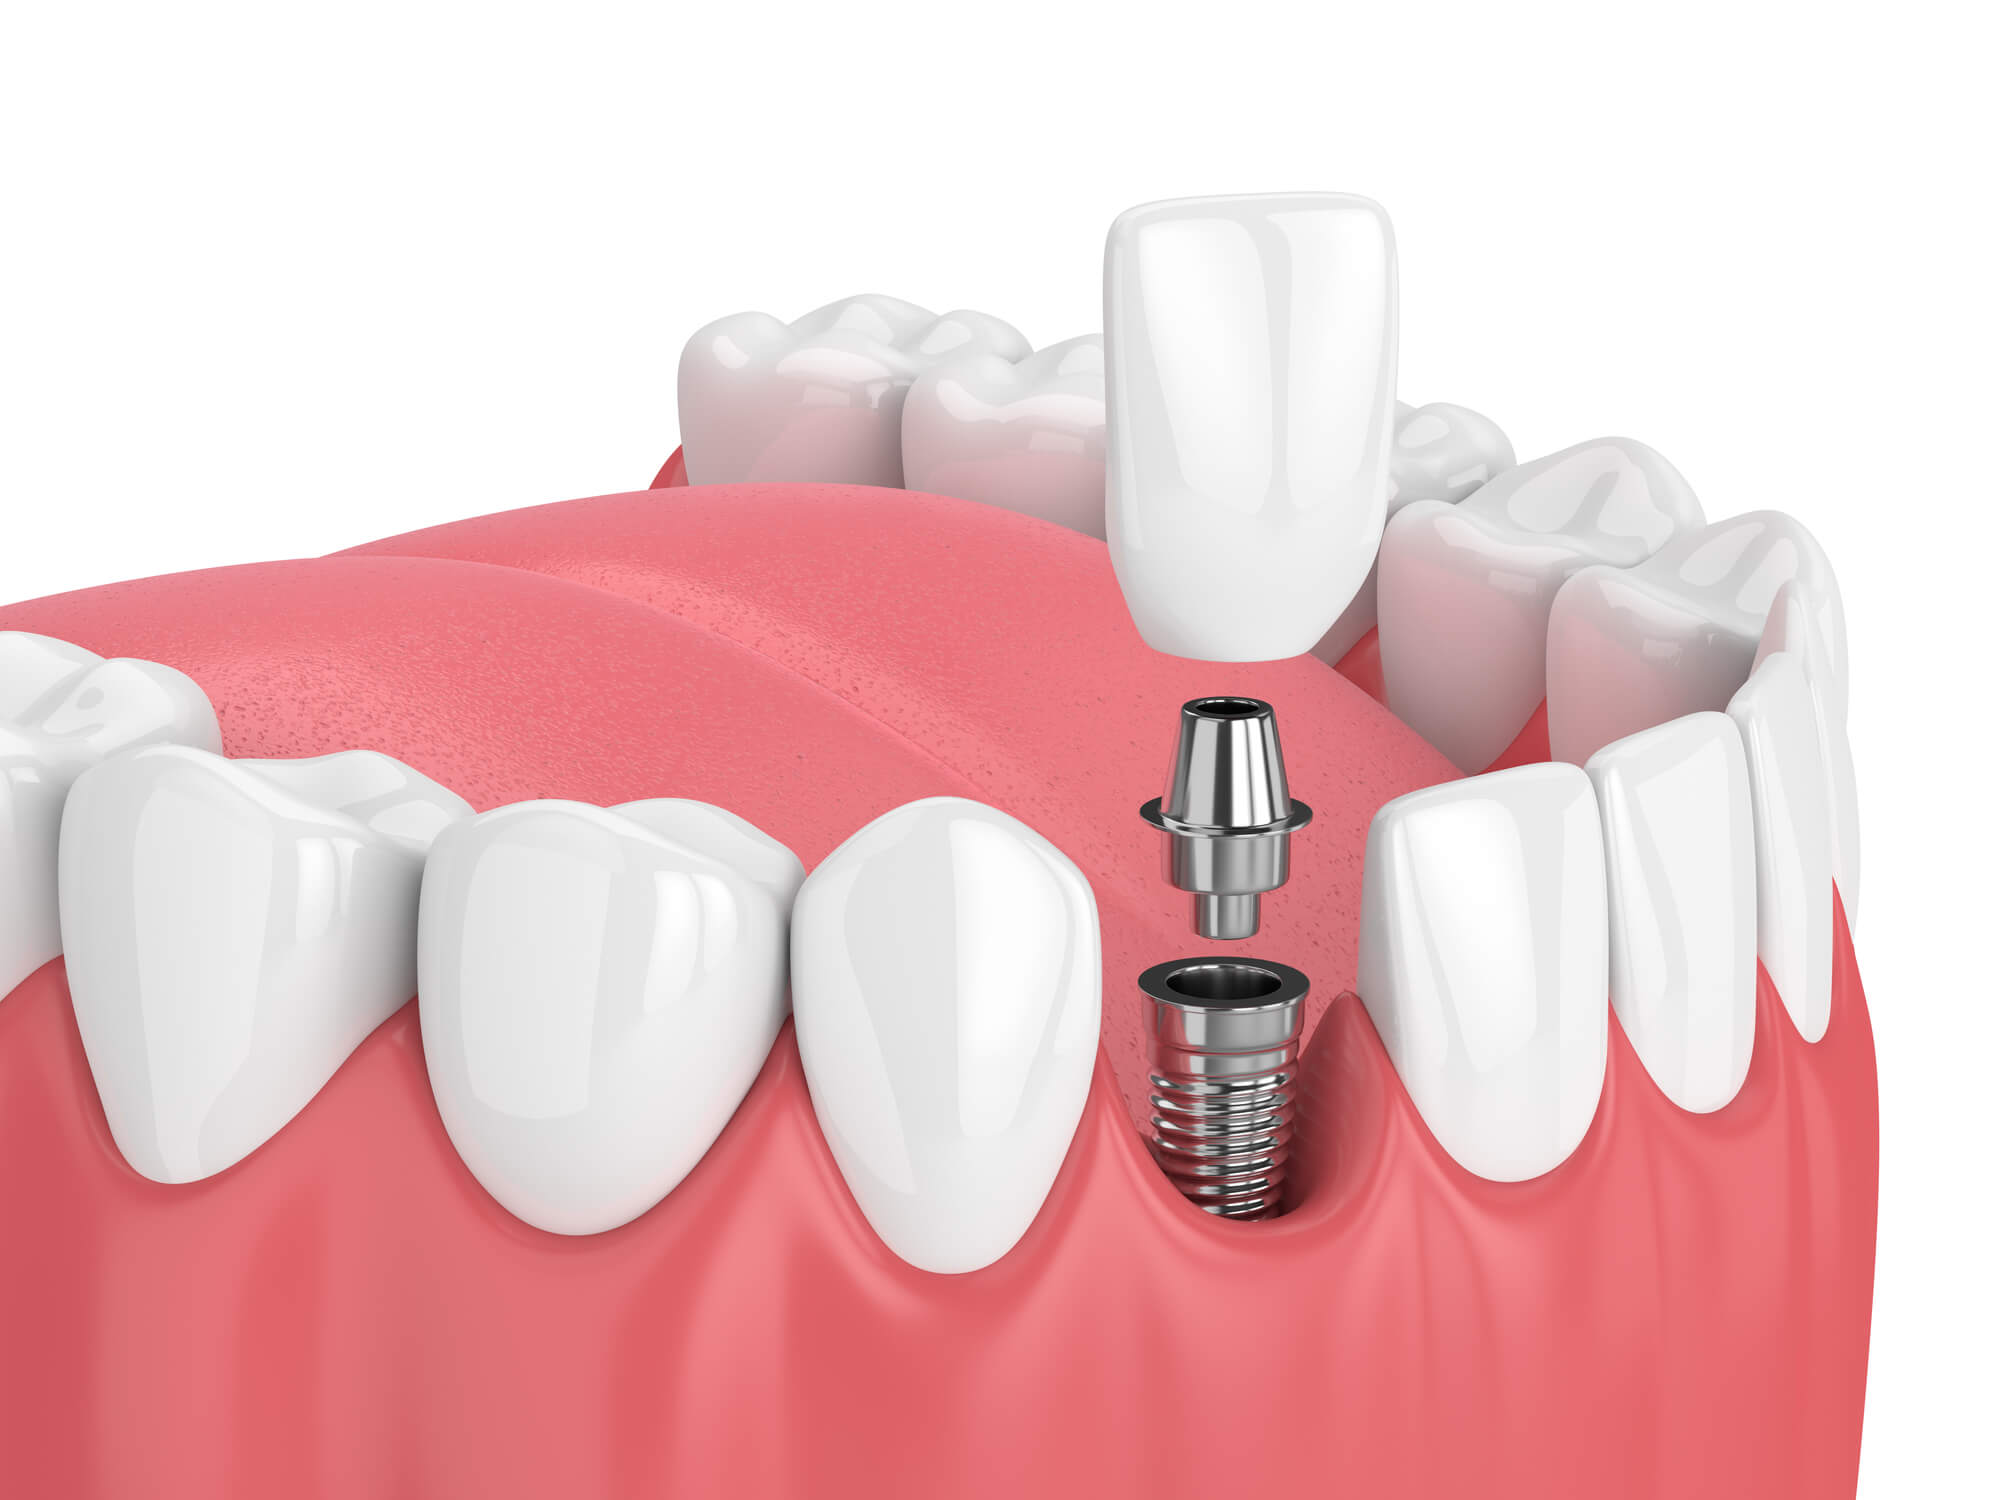 Where can i get Ceramic Implants Palm Beach Gardens?